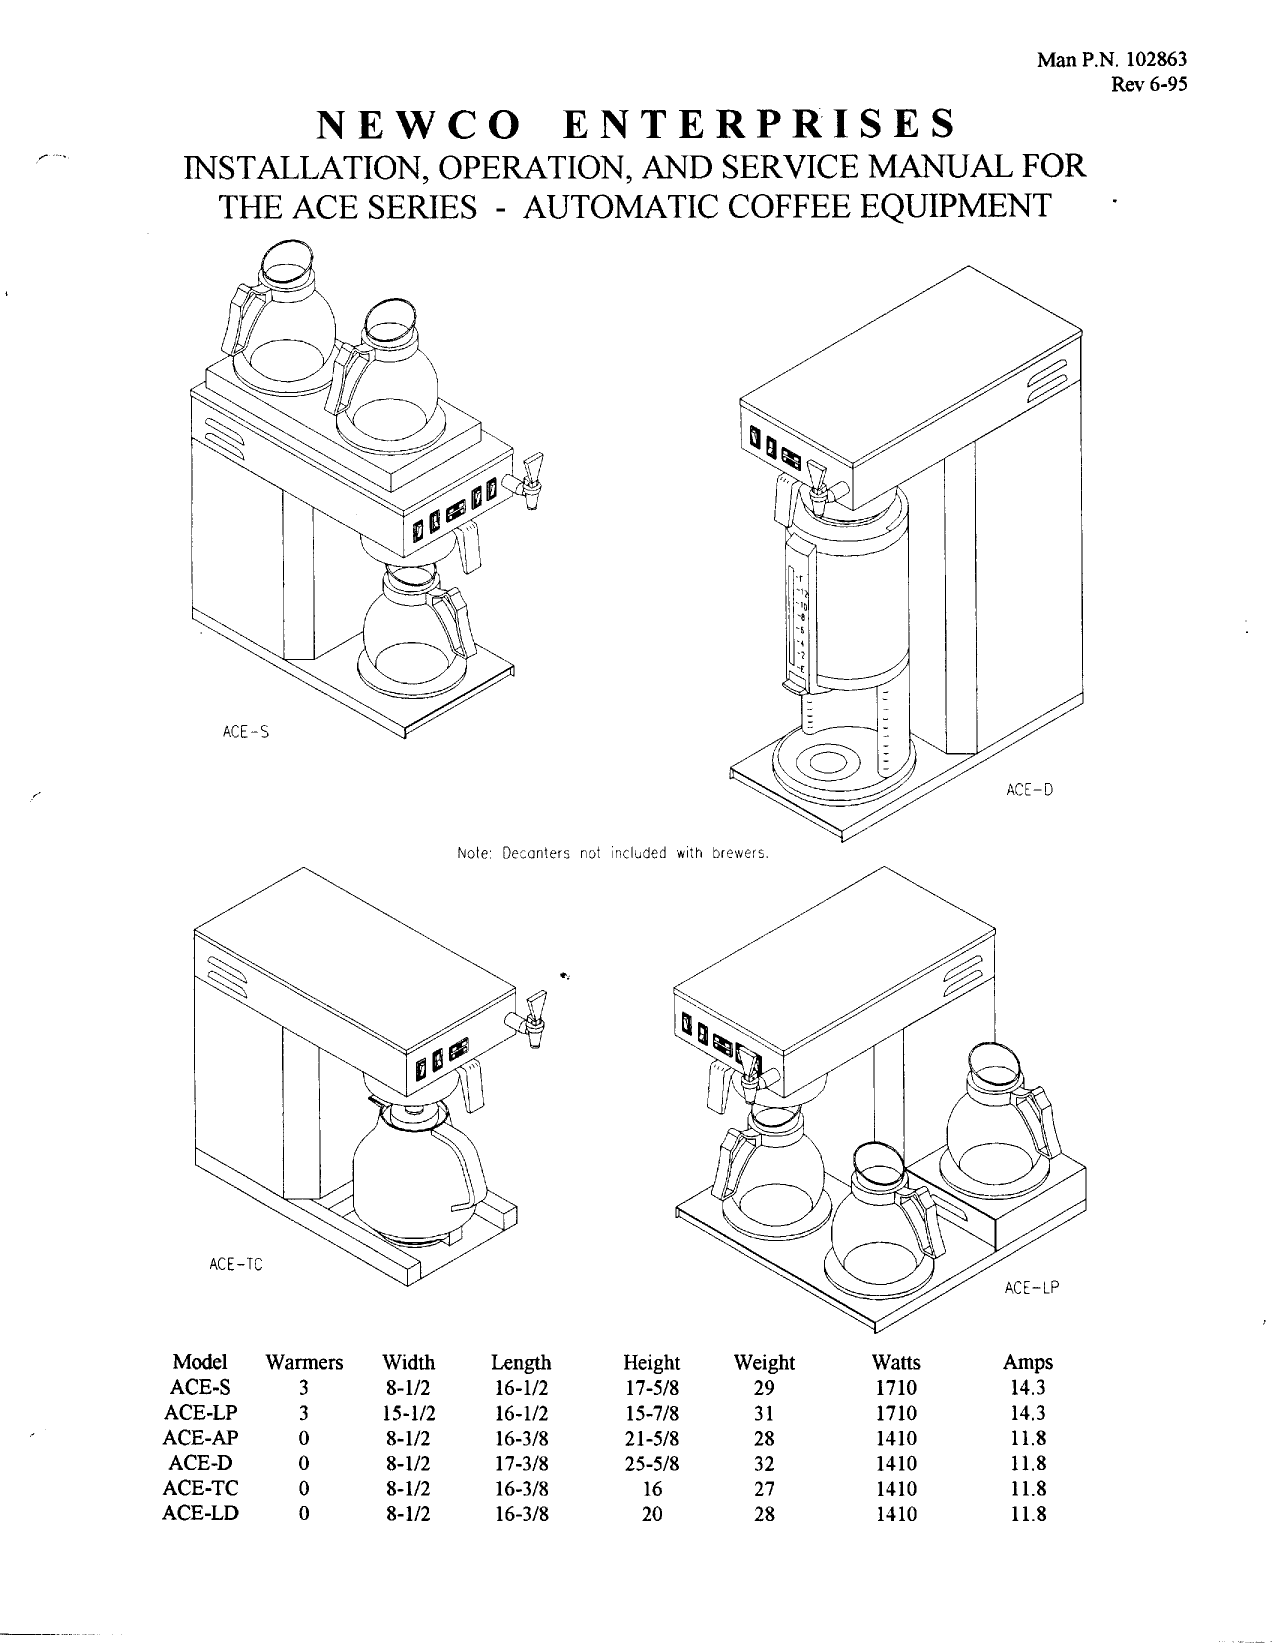 pdf for Newco Other HW Coffee Maker manual